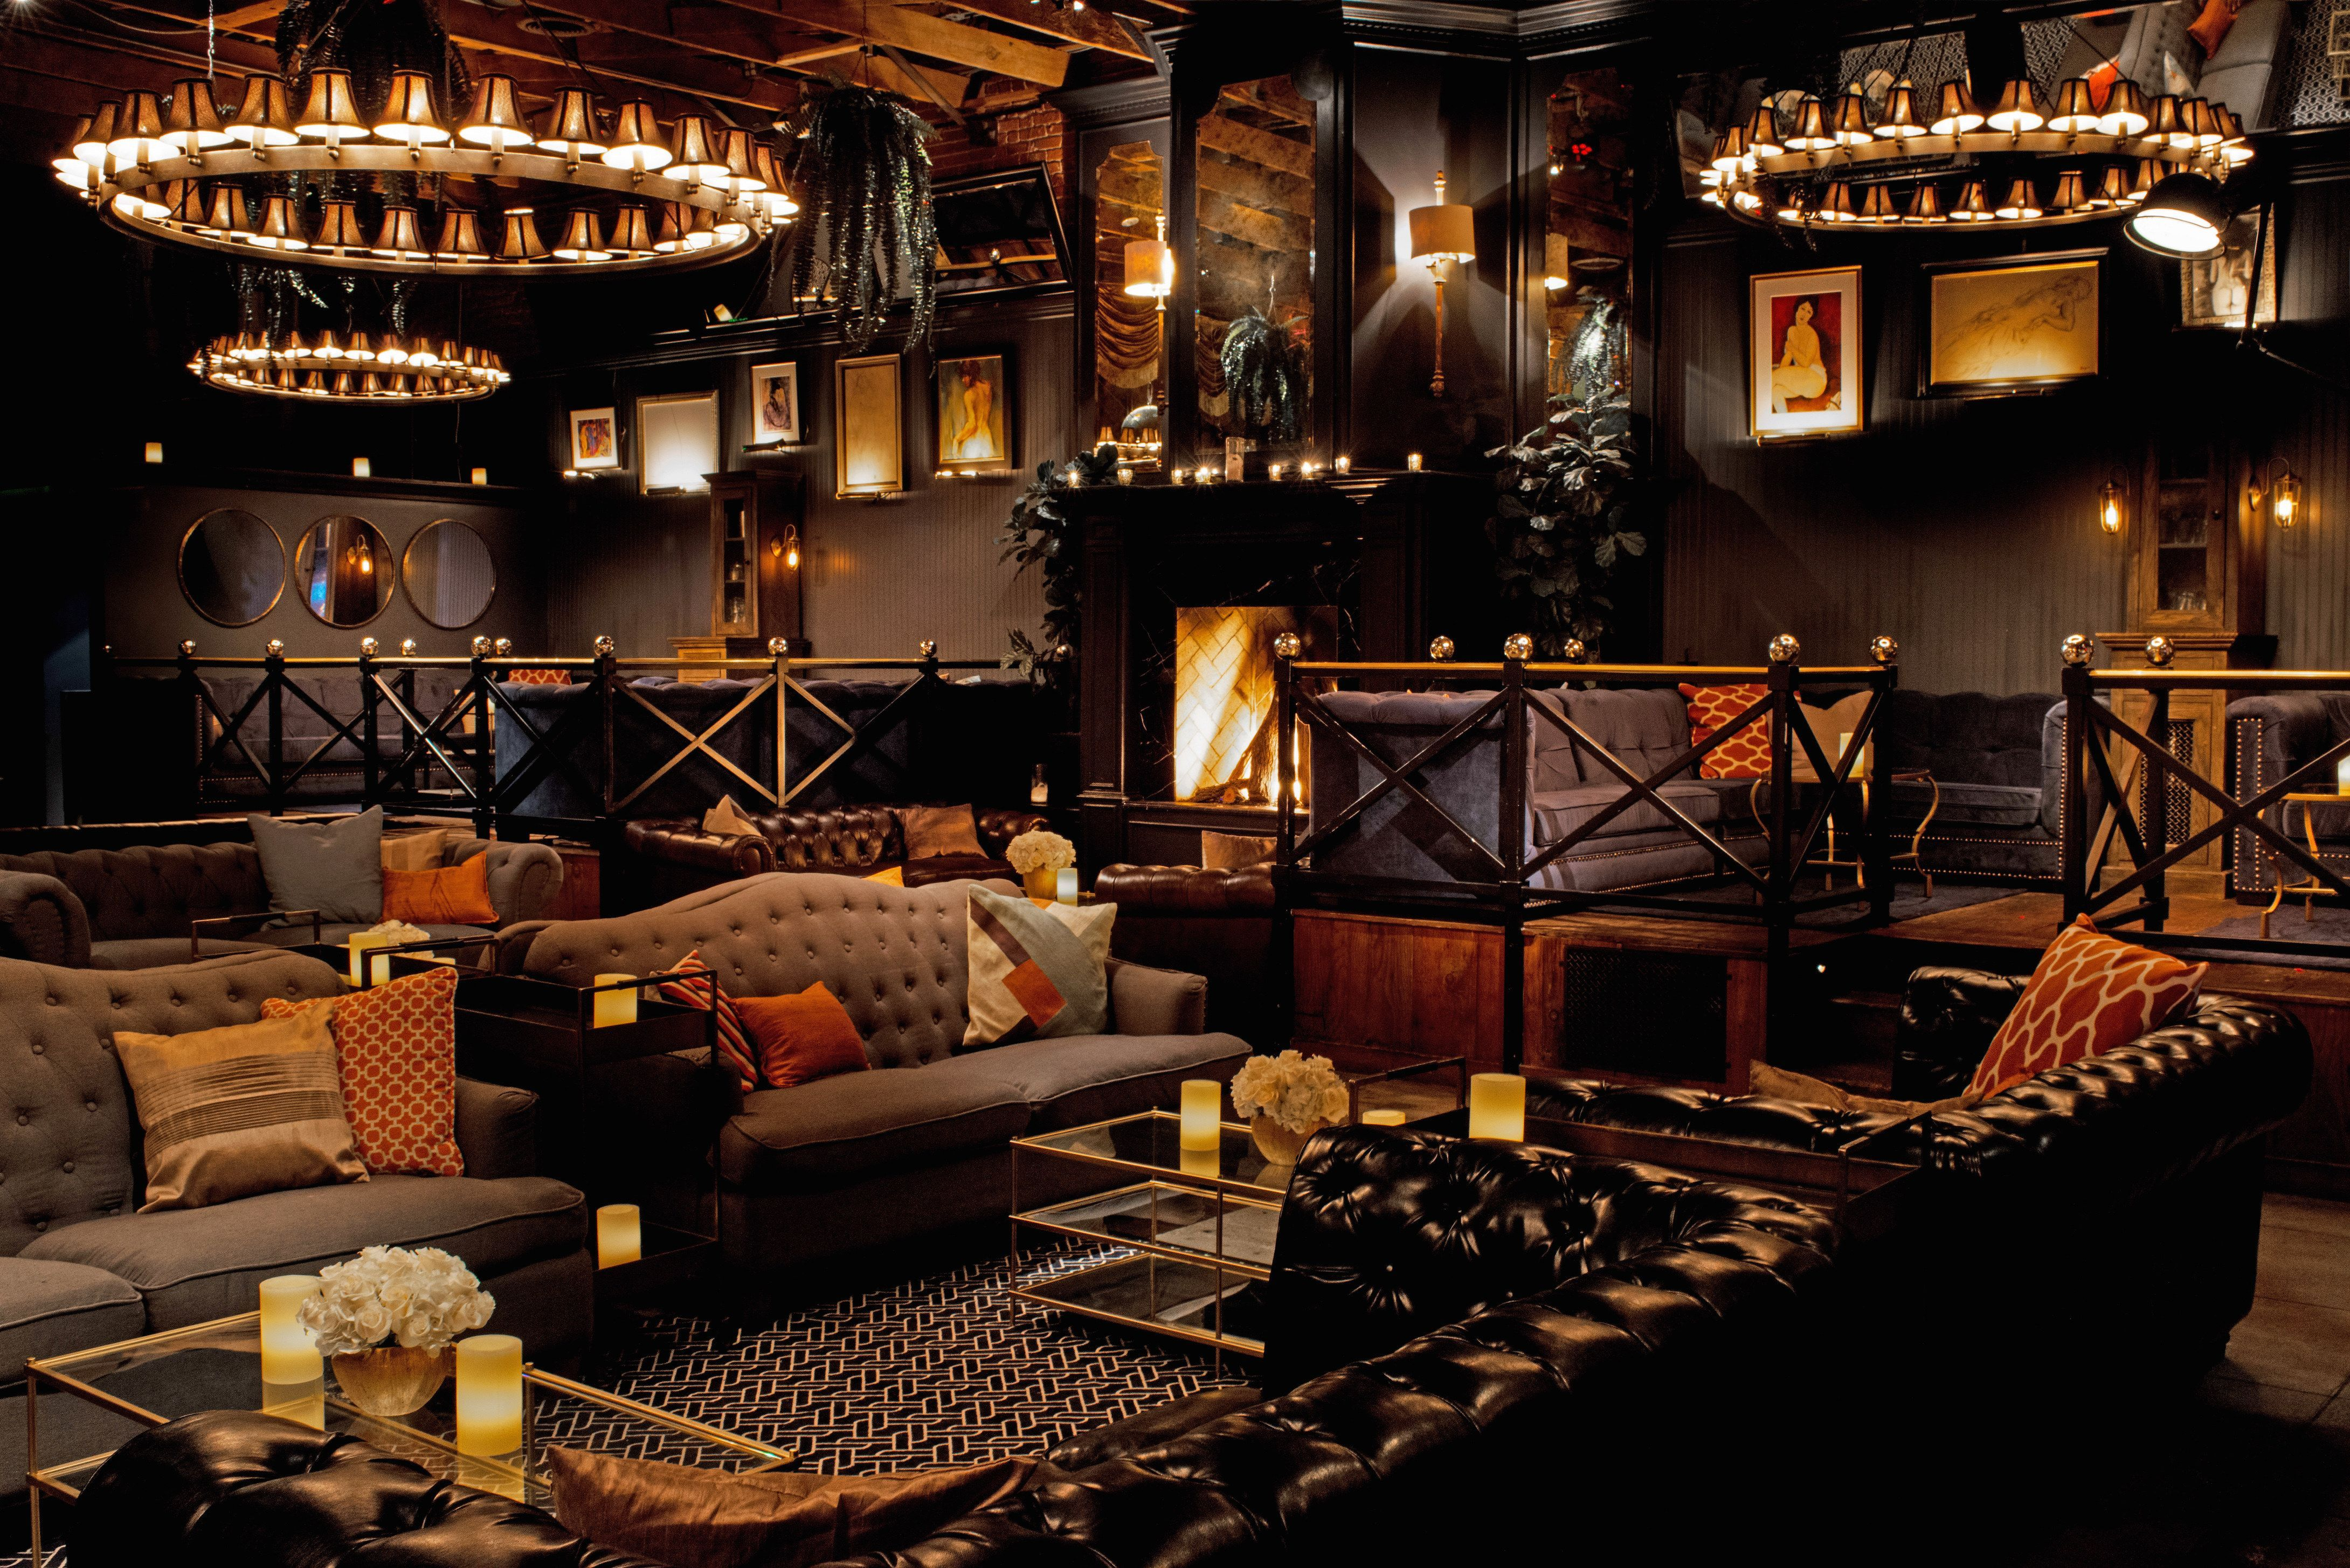 Glamorous And Exciting Bar Decor See More Luxurious Interior Design Details At Luxxu Net Luxury Bar Bar Design Restaurant Bar Interior Design